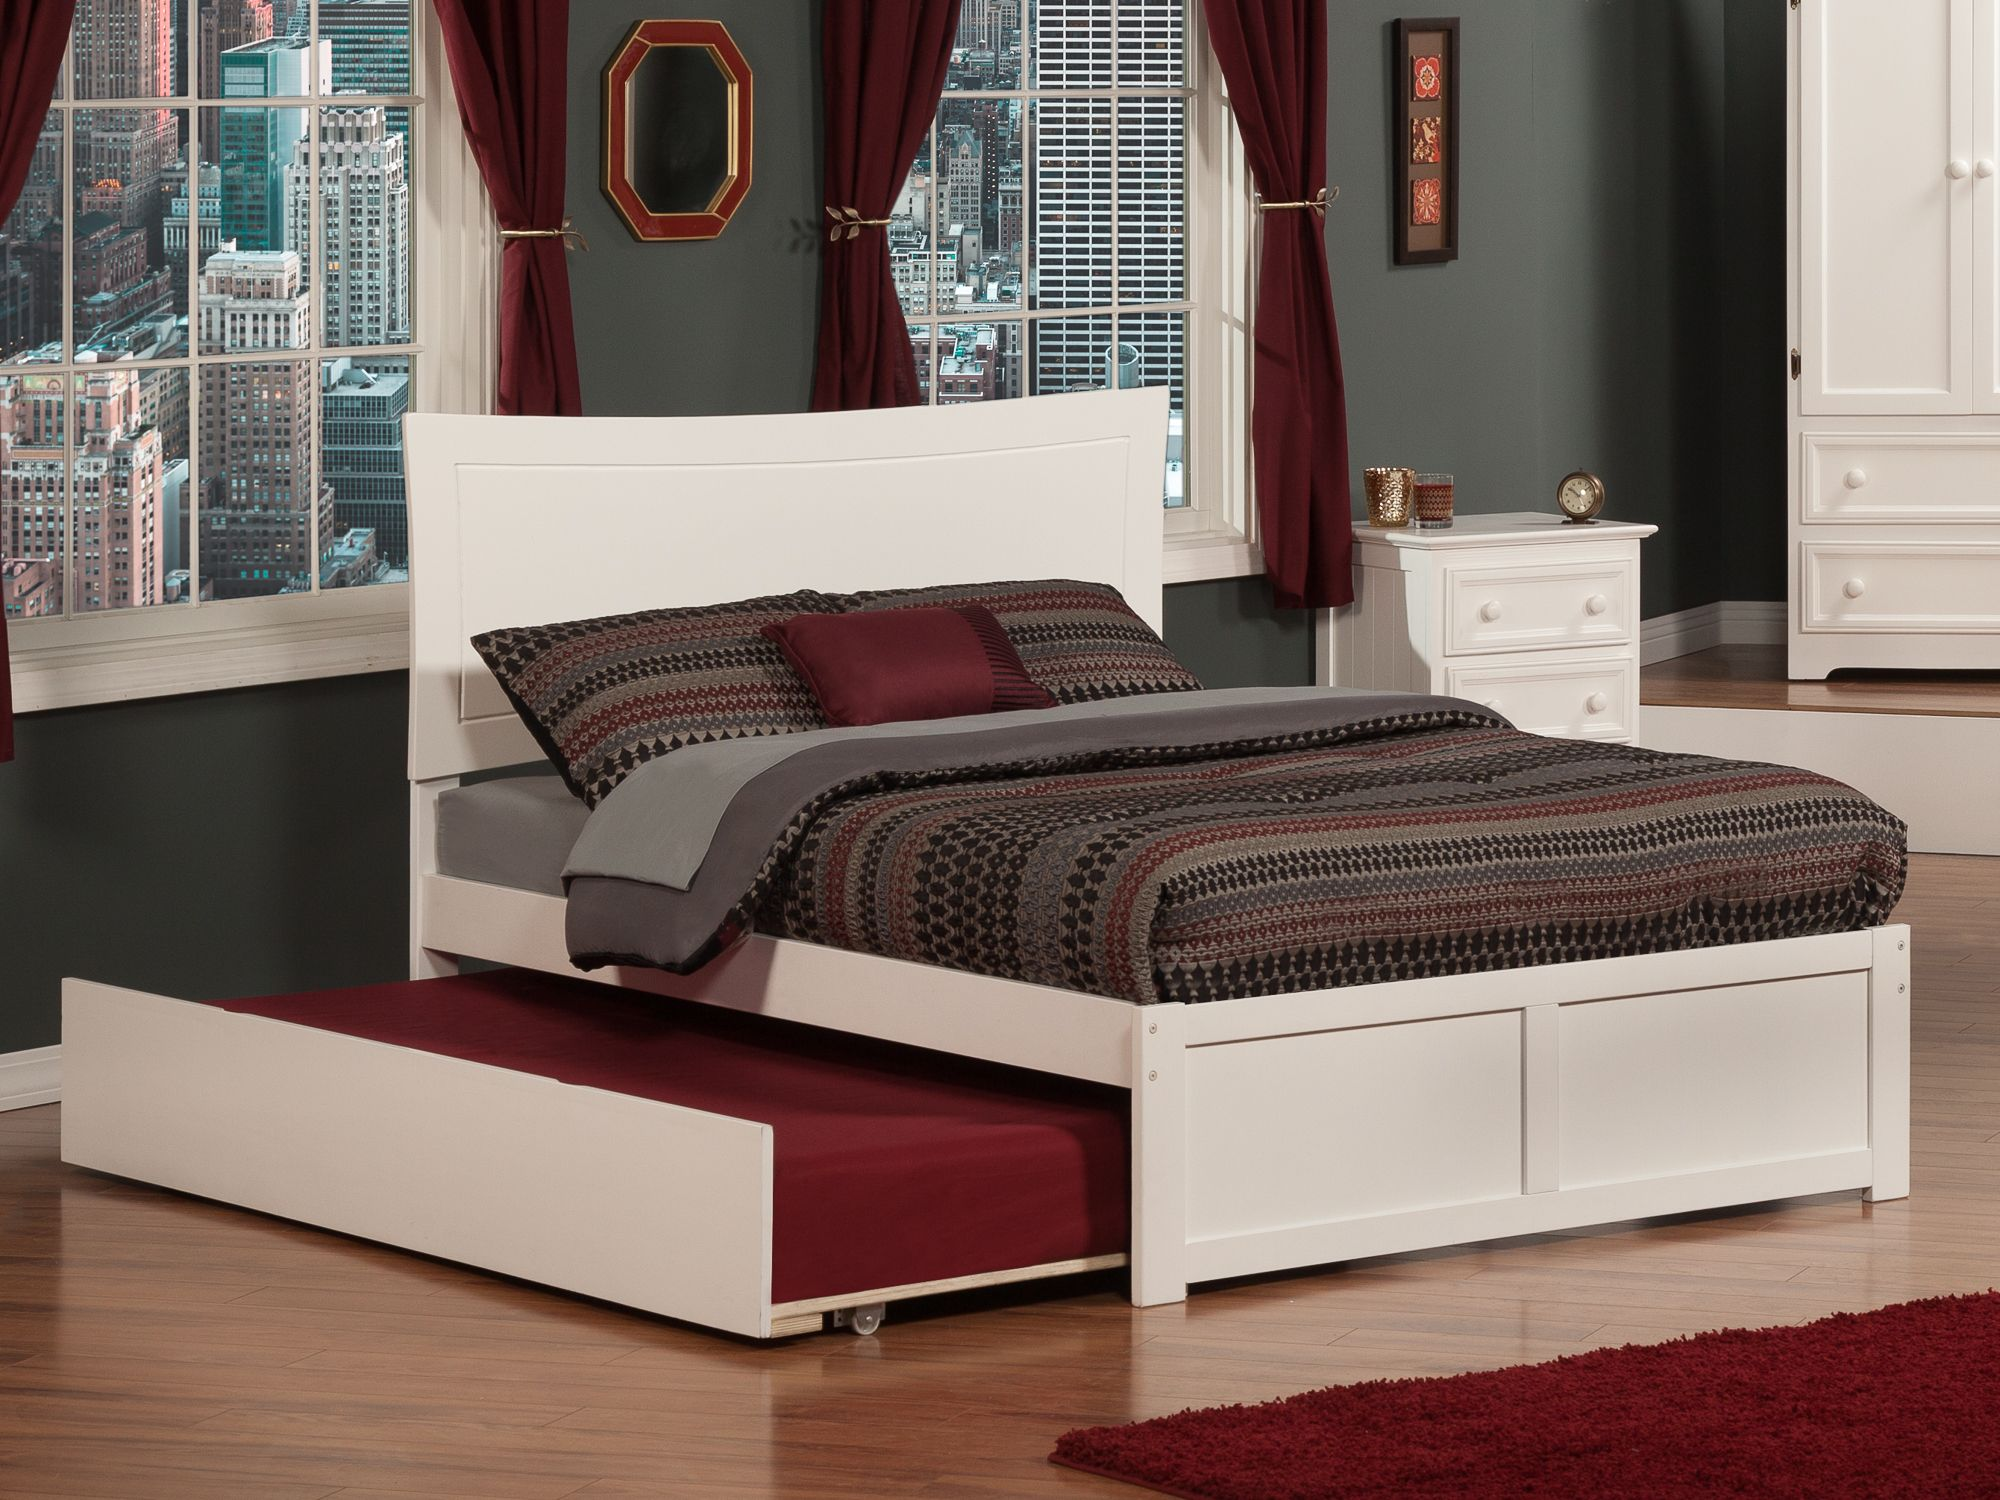 Add extra sleeping space to your bedroom with class through the